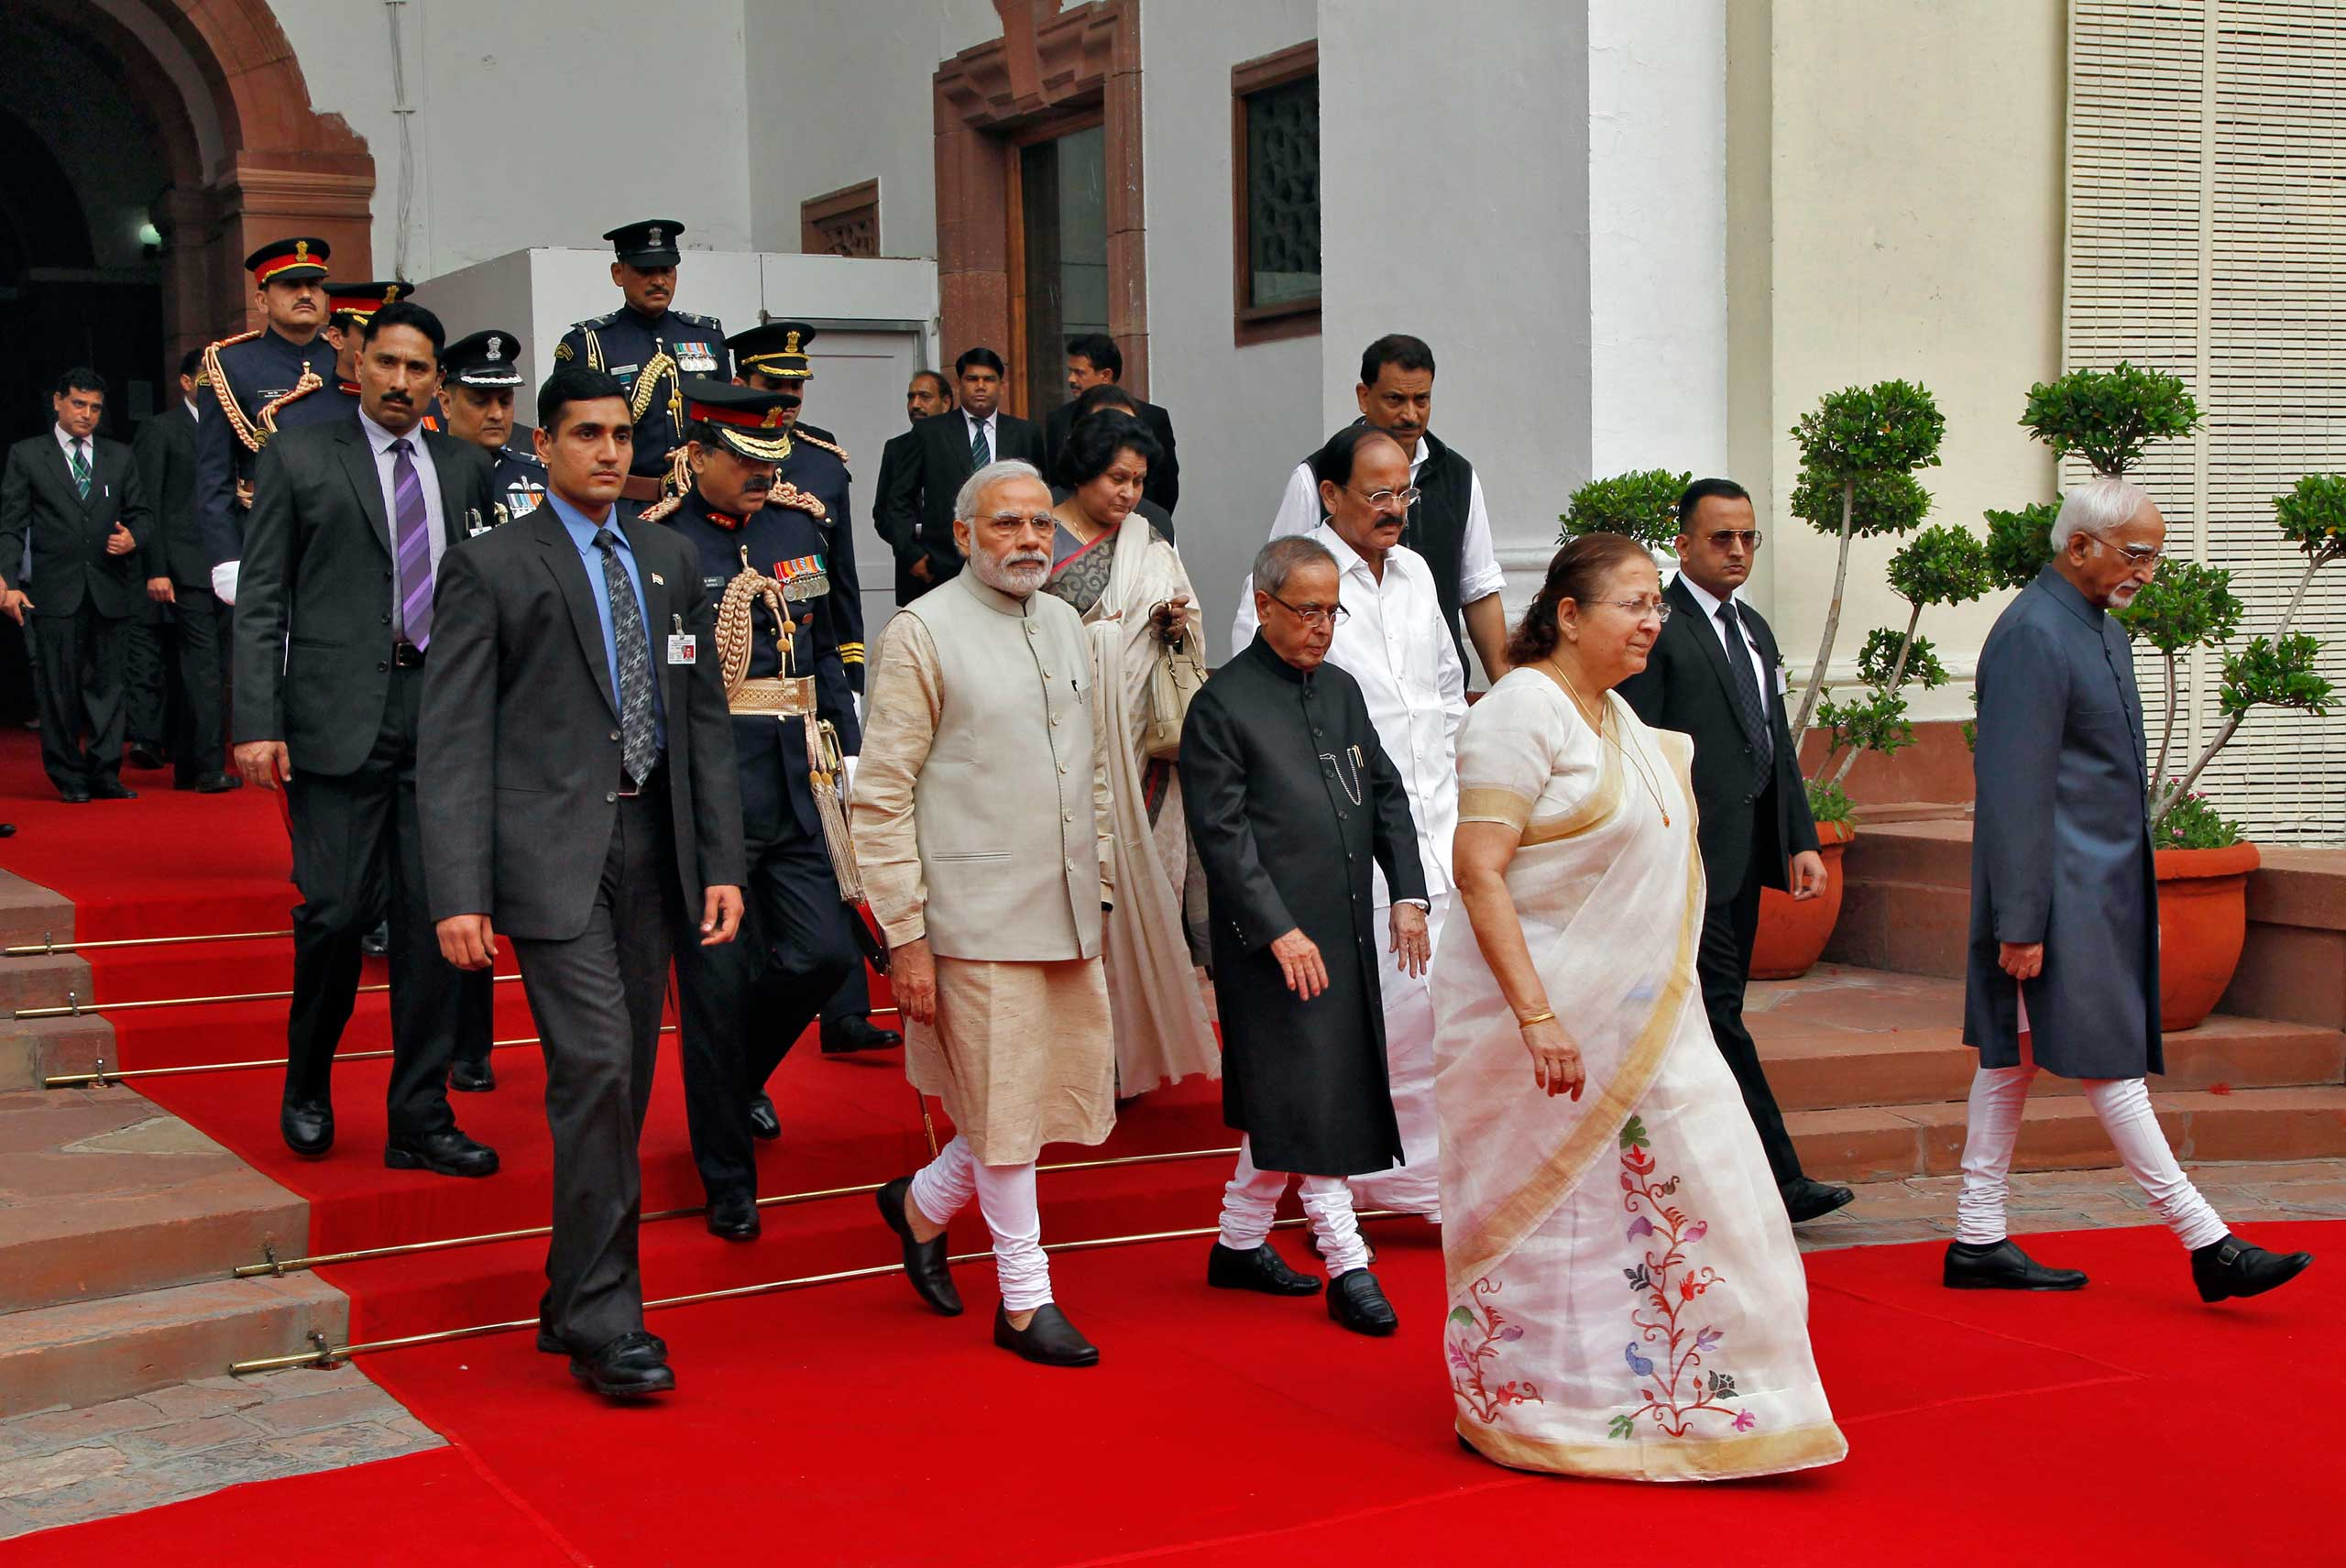 India's Prime Minister Narendra Modi, center left, and members of his government walk inside the parliament premises as they arrive to attend the first day of the budget session in New Delhi, Feb. 23, 2015.